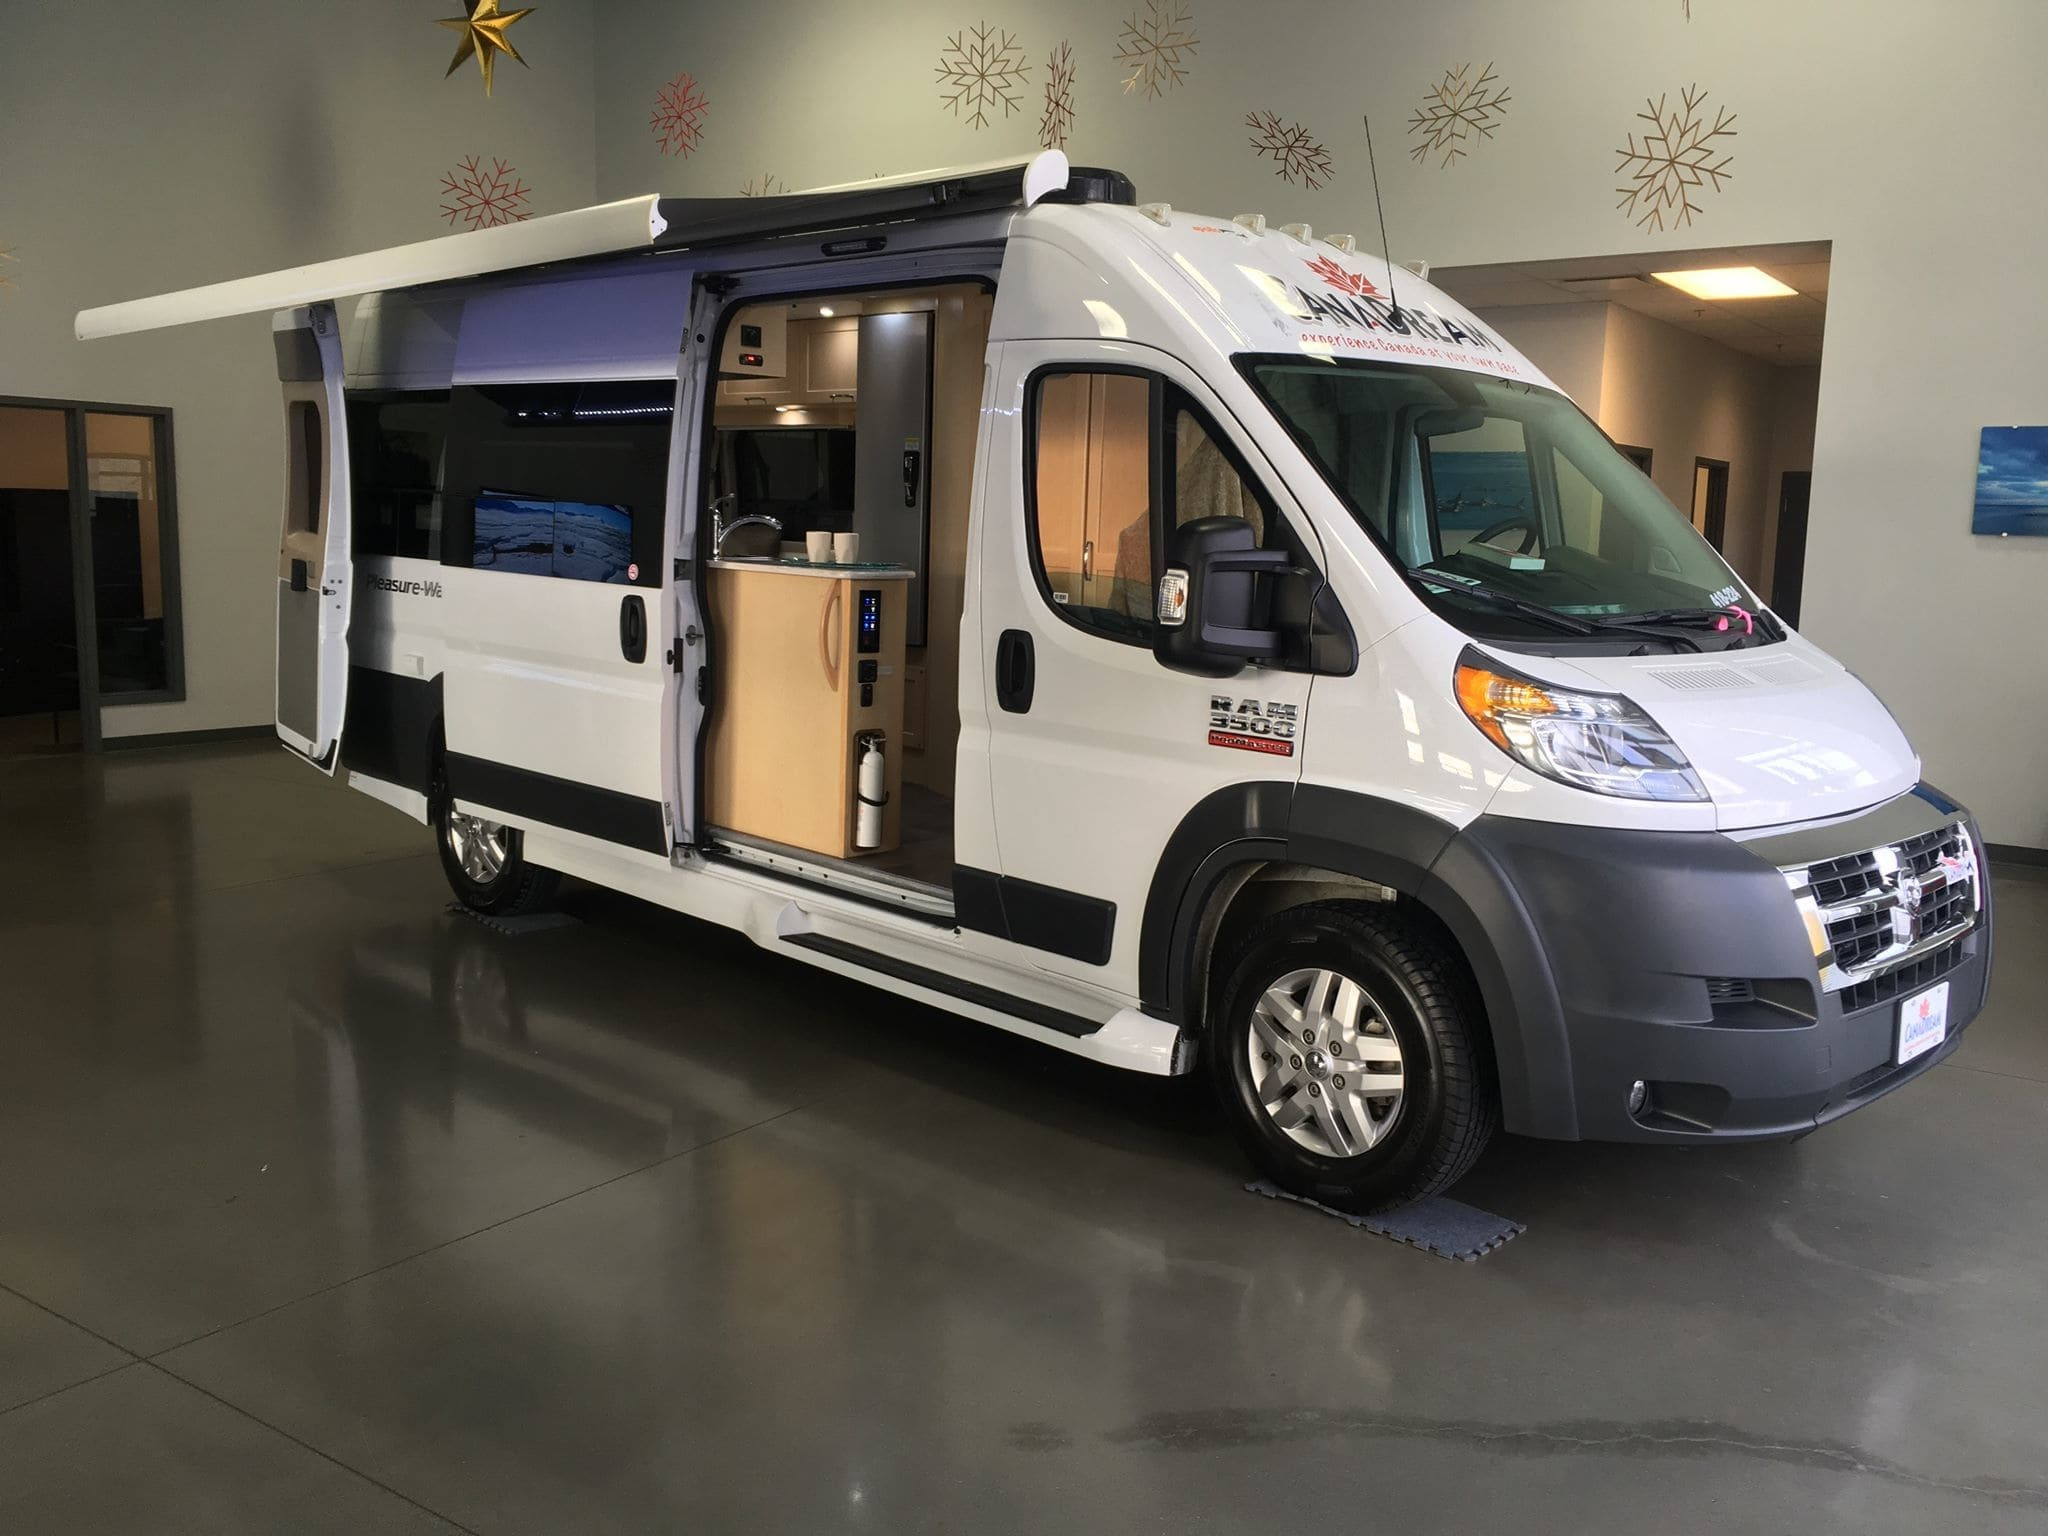 New & Used Class B Motorhome (Camper Van) for sale in Canada